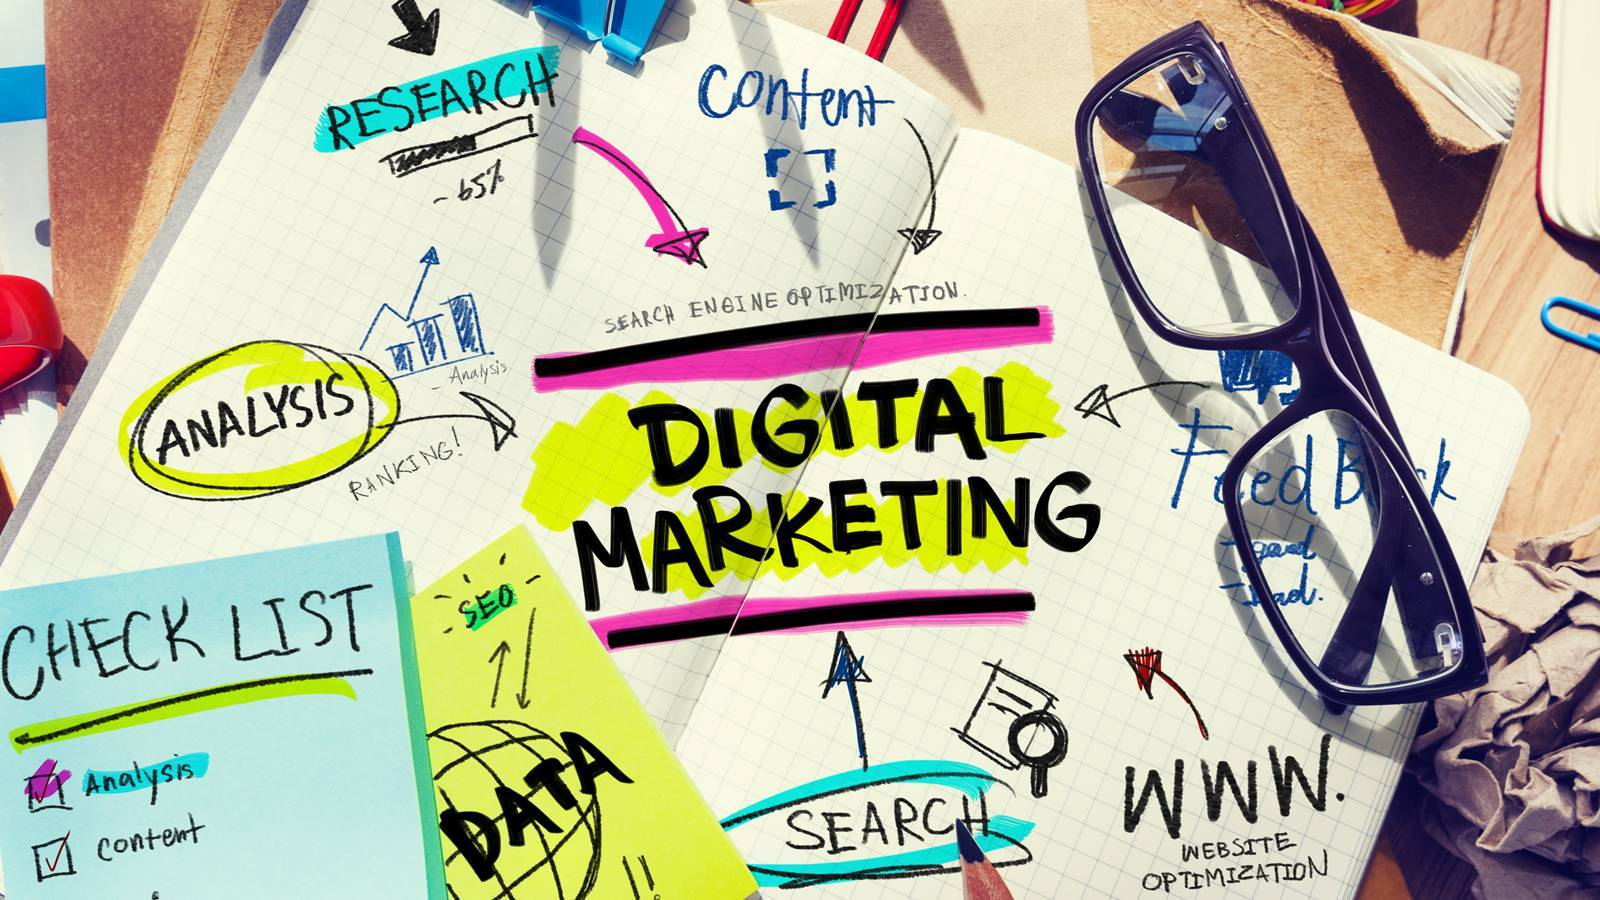 Virtualization of Marketing Activities Help Stay Ahead of